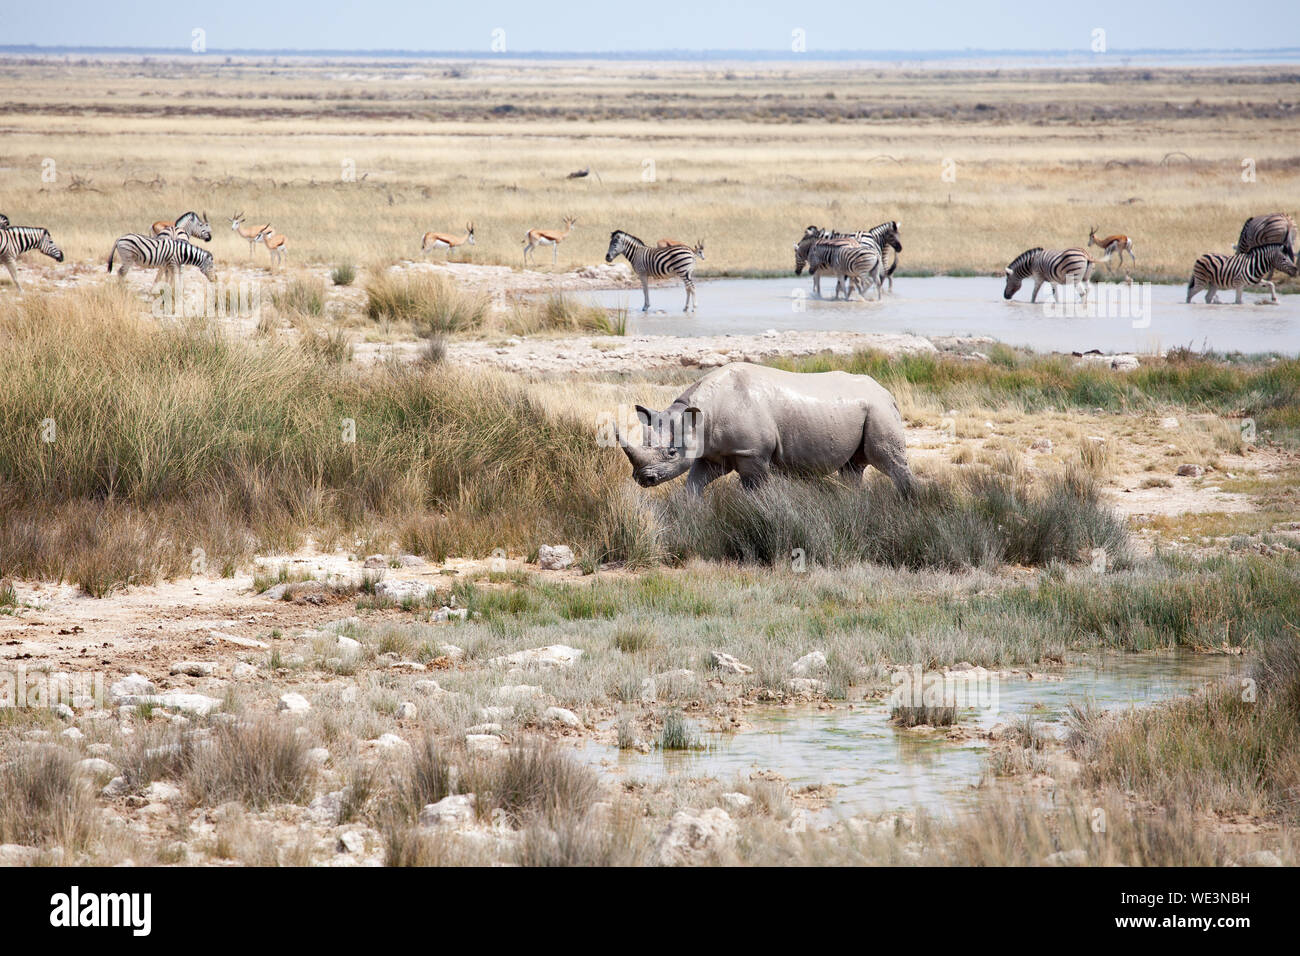 Rhinoceros with two tusks and herd of zebras and impala antelopes in Etosha National Park, Namibia drink water from the lake safari in Southern Africa Stock Photo